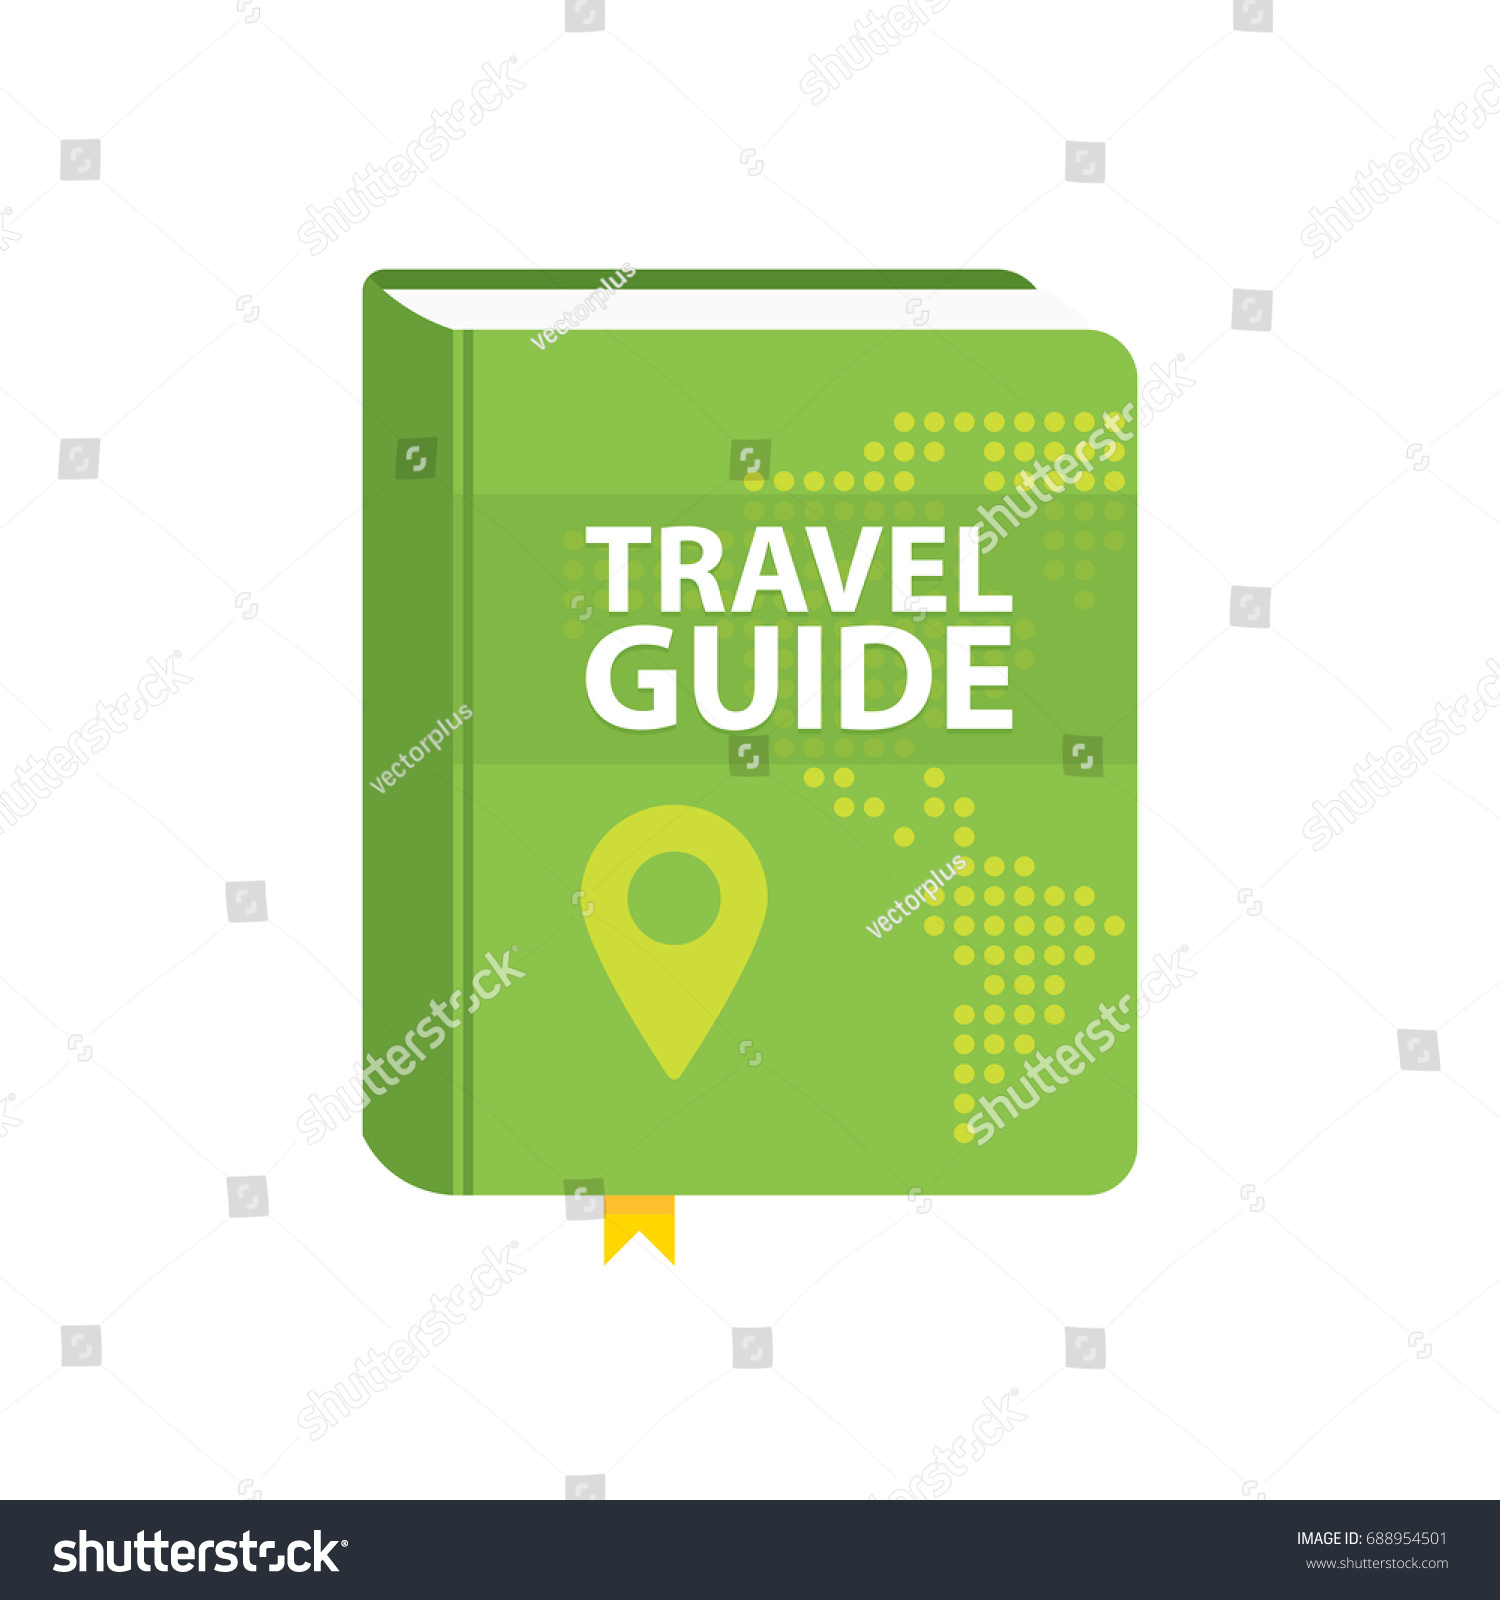 Travel guide book icon world map vectores en stock 688954501 travel guide book icon world map and pin in cover flat vector illustration gumiabroncs Images